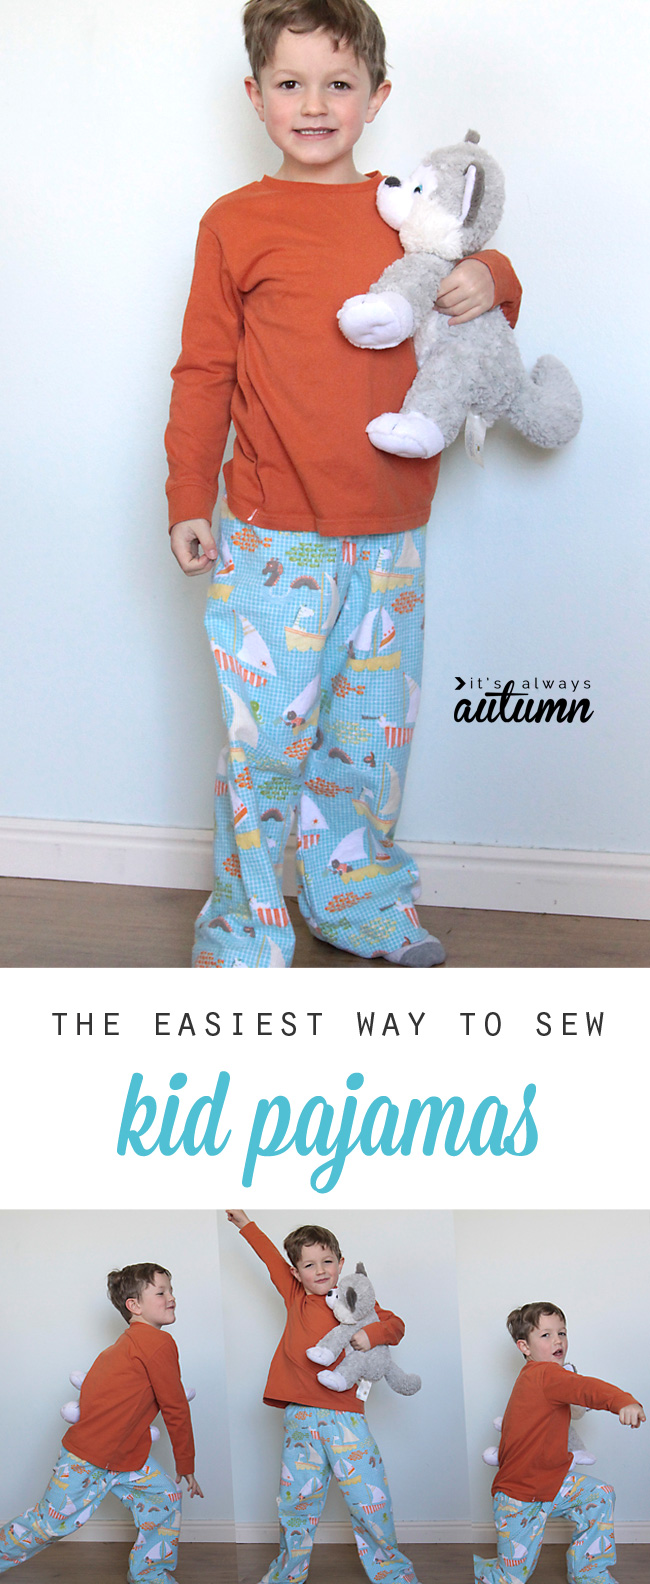 This tutorial explains the easiest way to sew kid pajamas - no pattern  needed! Great 09bcc3343